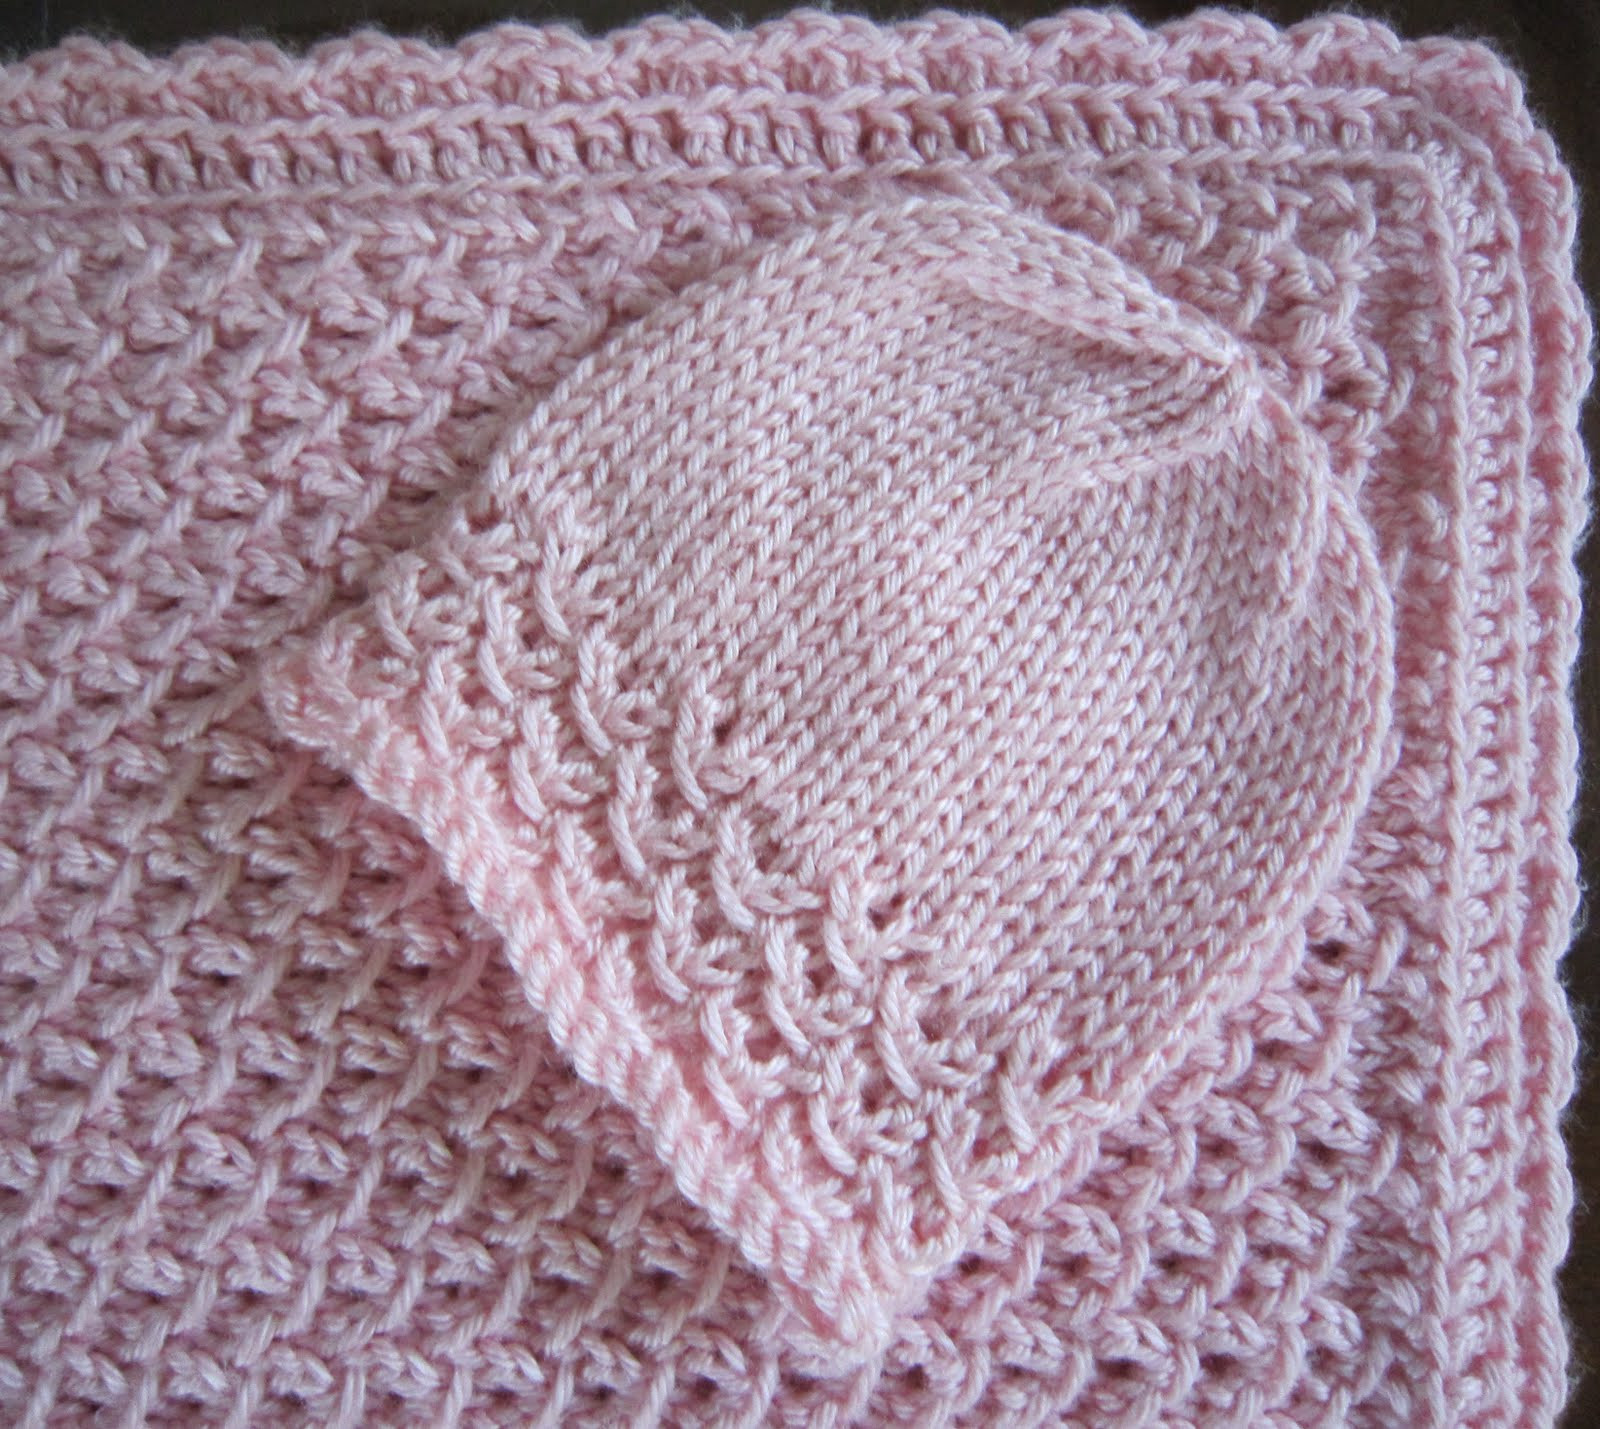 Unique Free Baby Blanket Patterns to Crochet Crochet and Knit Free Baby Patterns Of Top 48 Ideas Free Baby Patterns